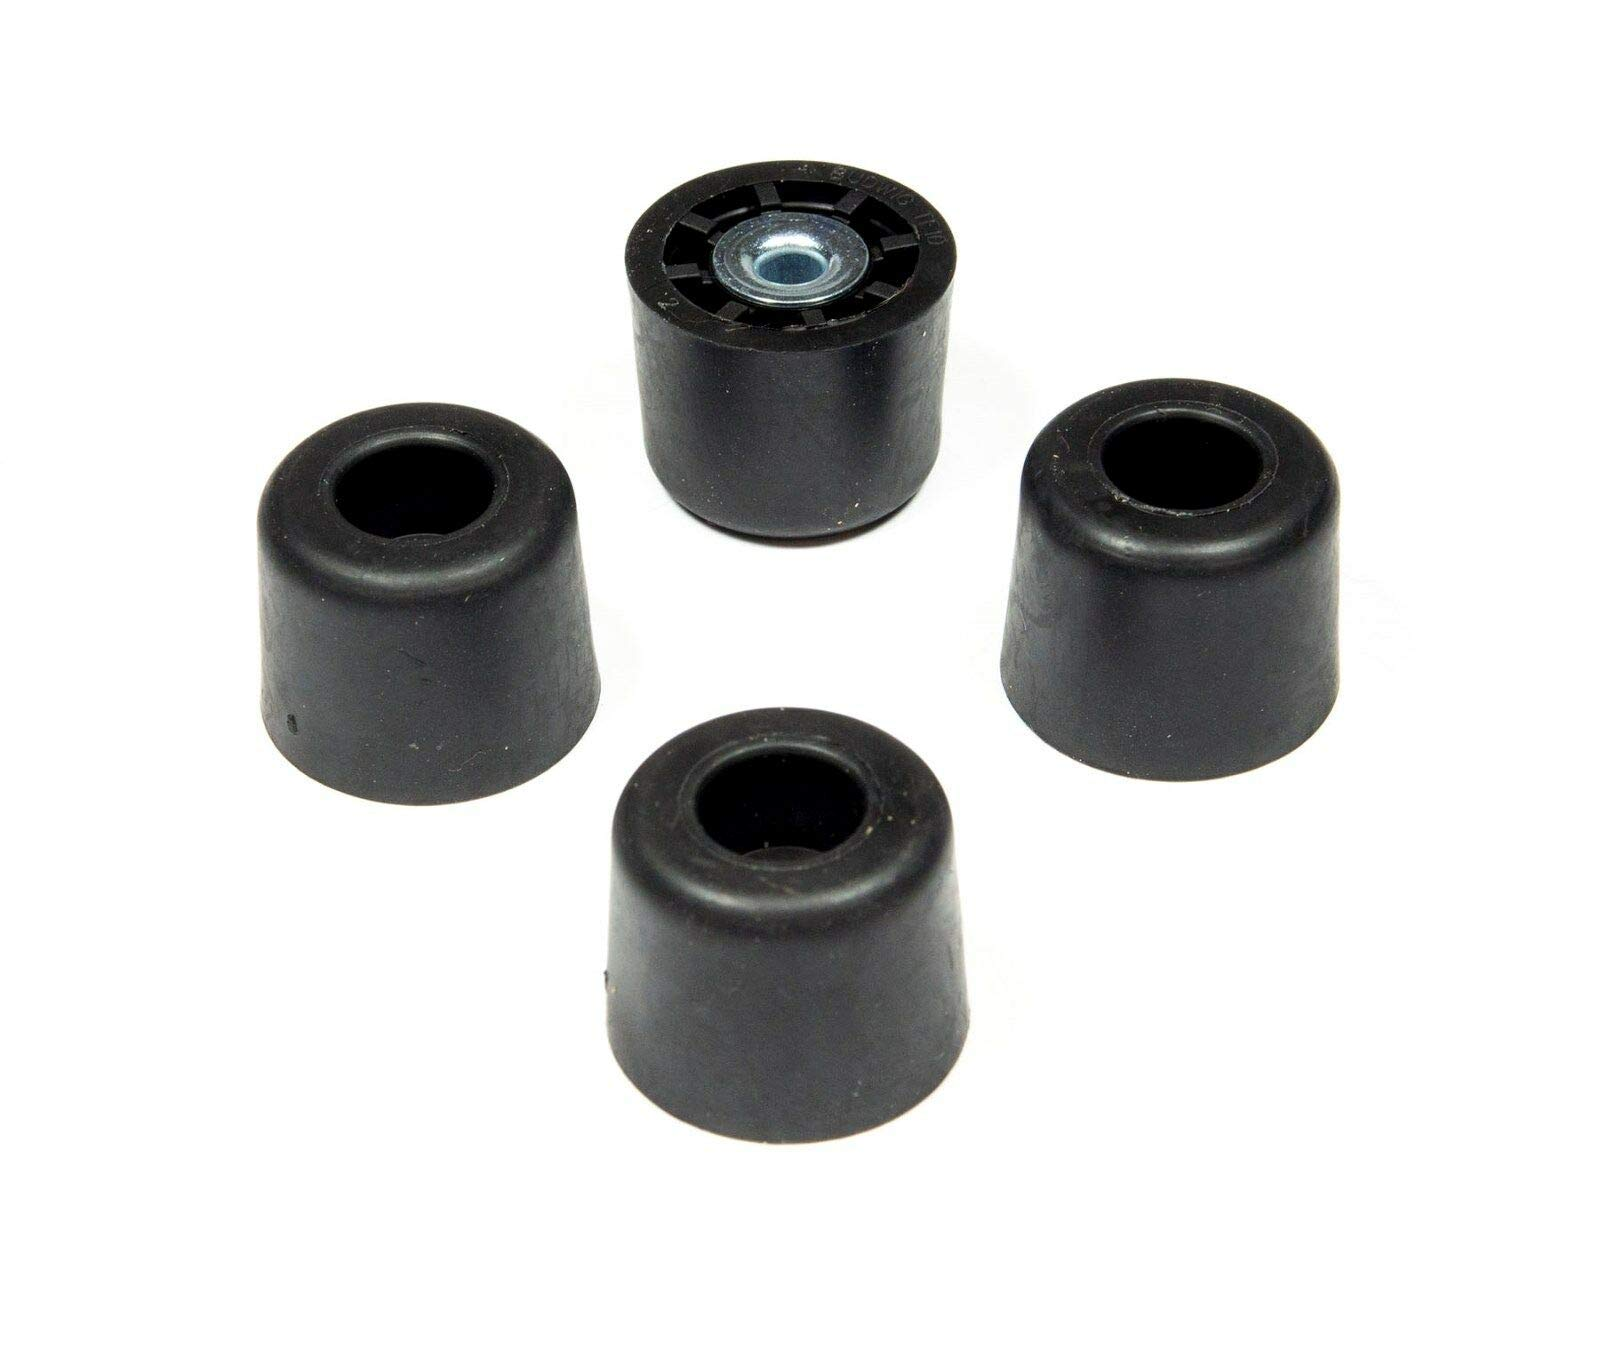 20 Extra Tall Round Rubber FEET Bumpers .875 H X 1.125 D AMPS, Radio - Free S&H